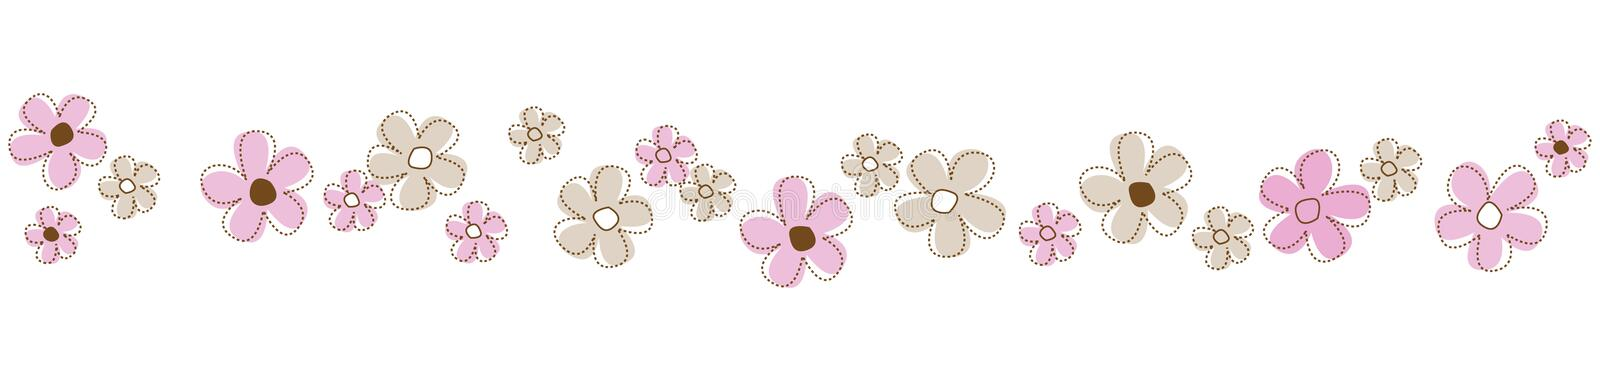 Flowers Line / Divider Royalty Free Stock Photos